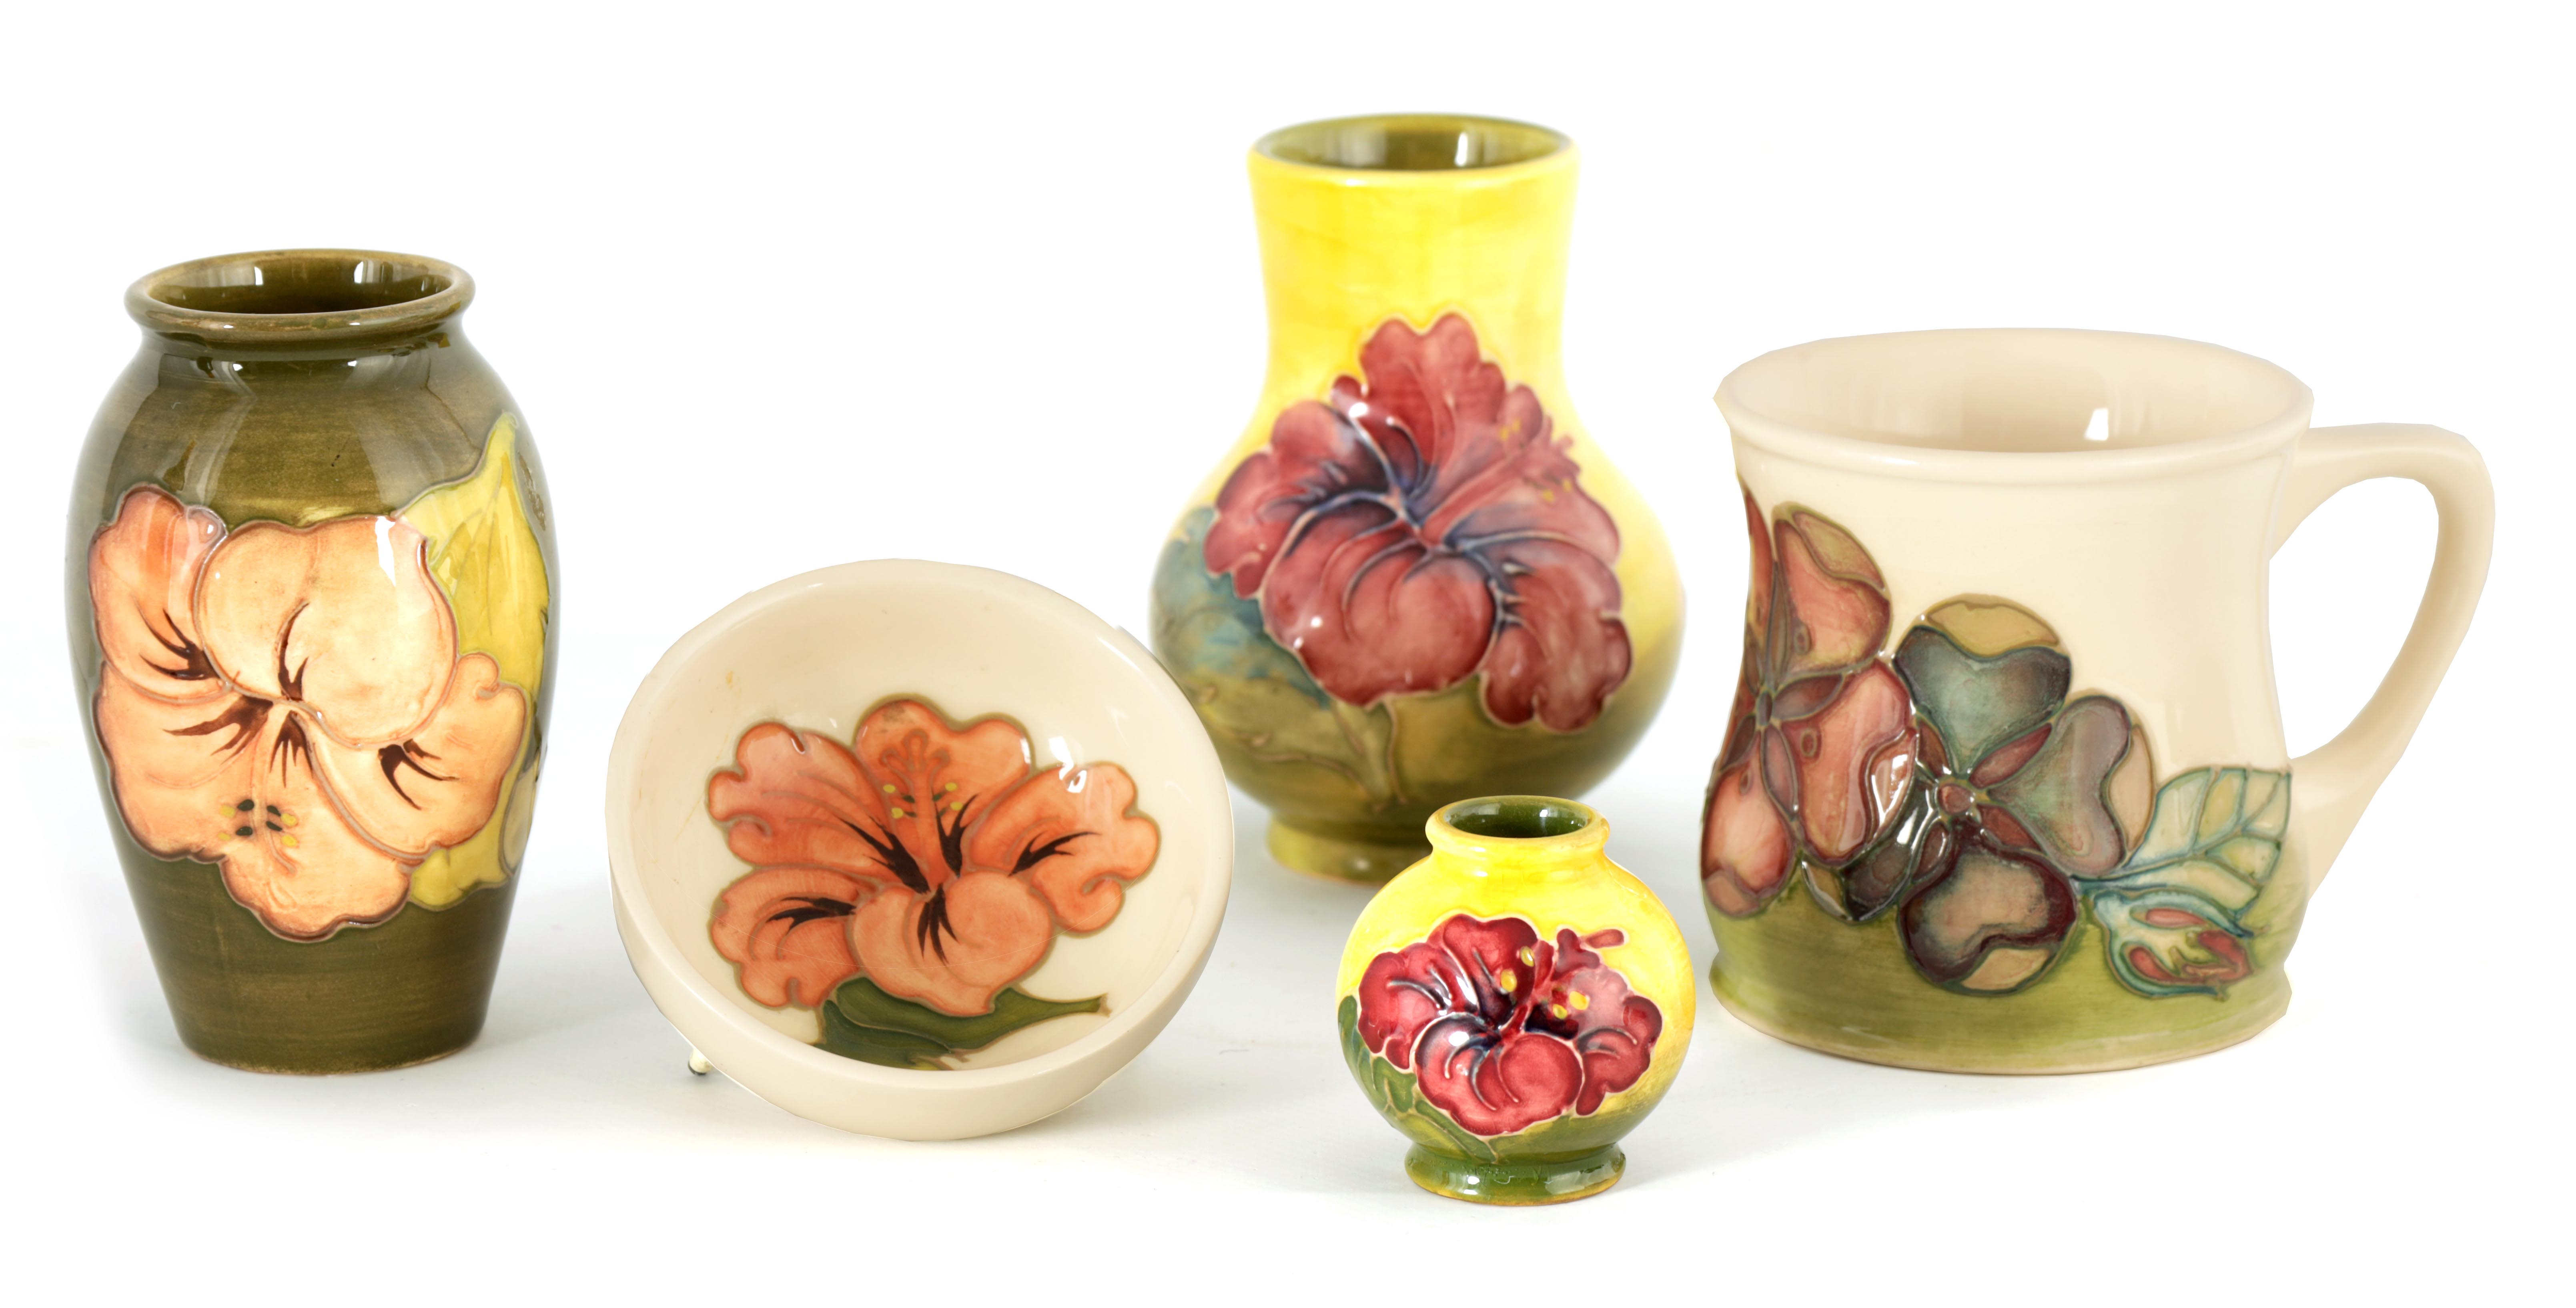 A MOORCROFT MINIATURE BULBOUS CABINET VASE tube lined and decorated with hibiscus flowerhead